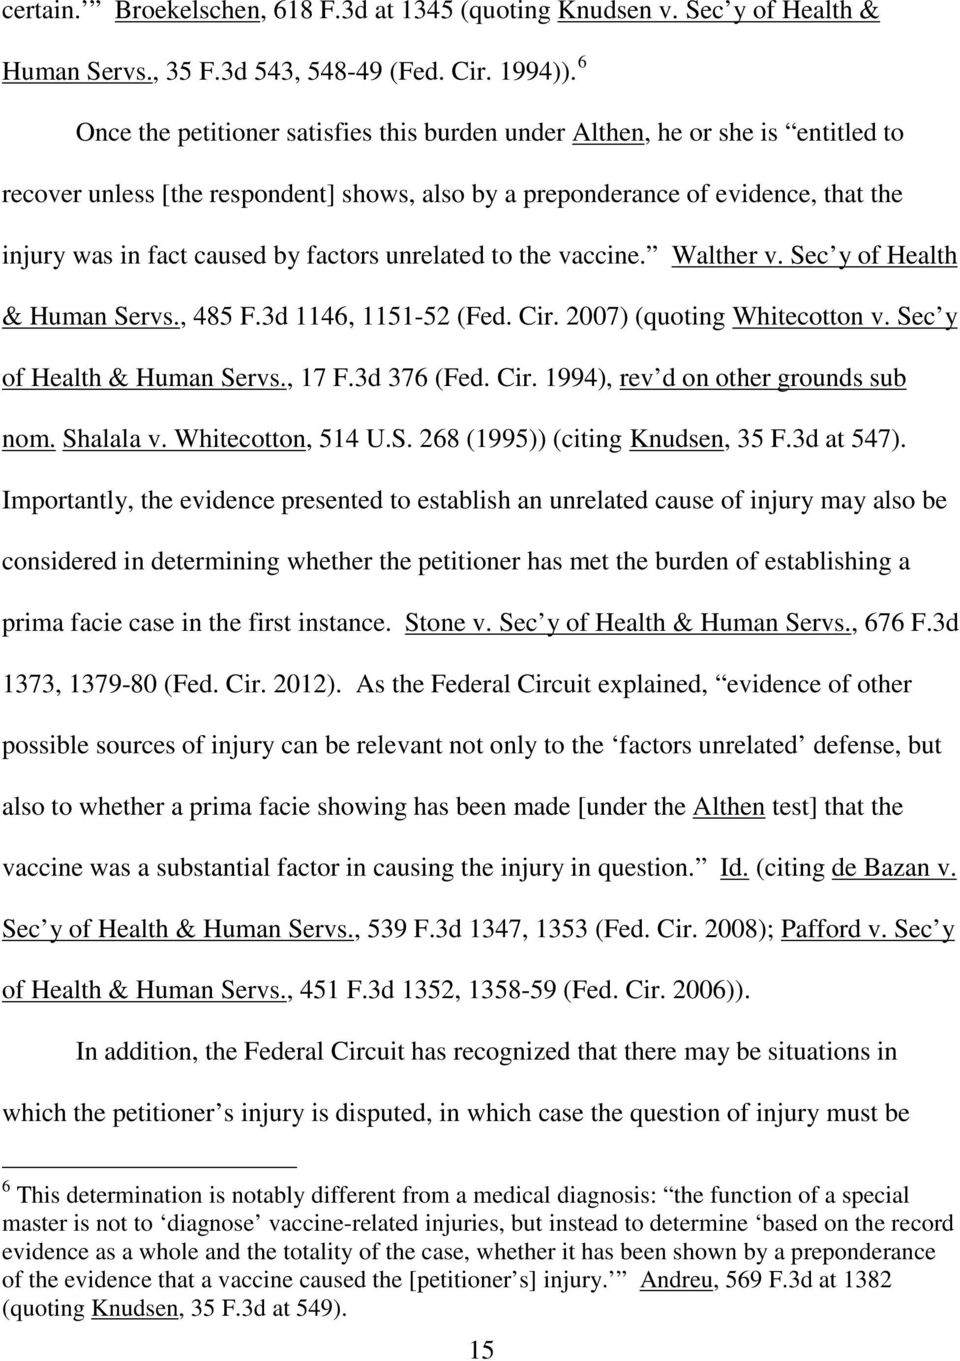 factors unrelated to the vaccine. Walther v. Sec y of Health & Human Servs., 485 F.3d 1146, 1151-52 (Fed. Cir. 2007 (quoting Whitecotton v. Sec y of Health & Human Servs., 17 F.3d 376 (Fed. Cir. 1994, rev d on other grounds sub nom.